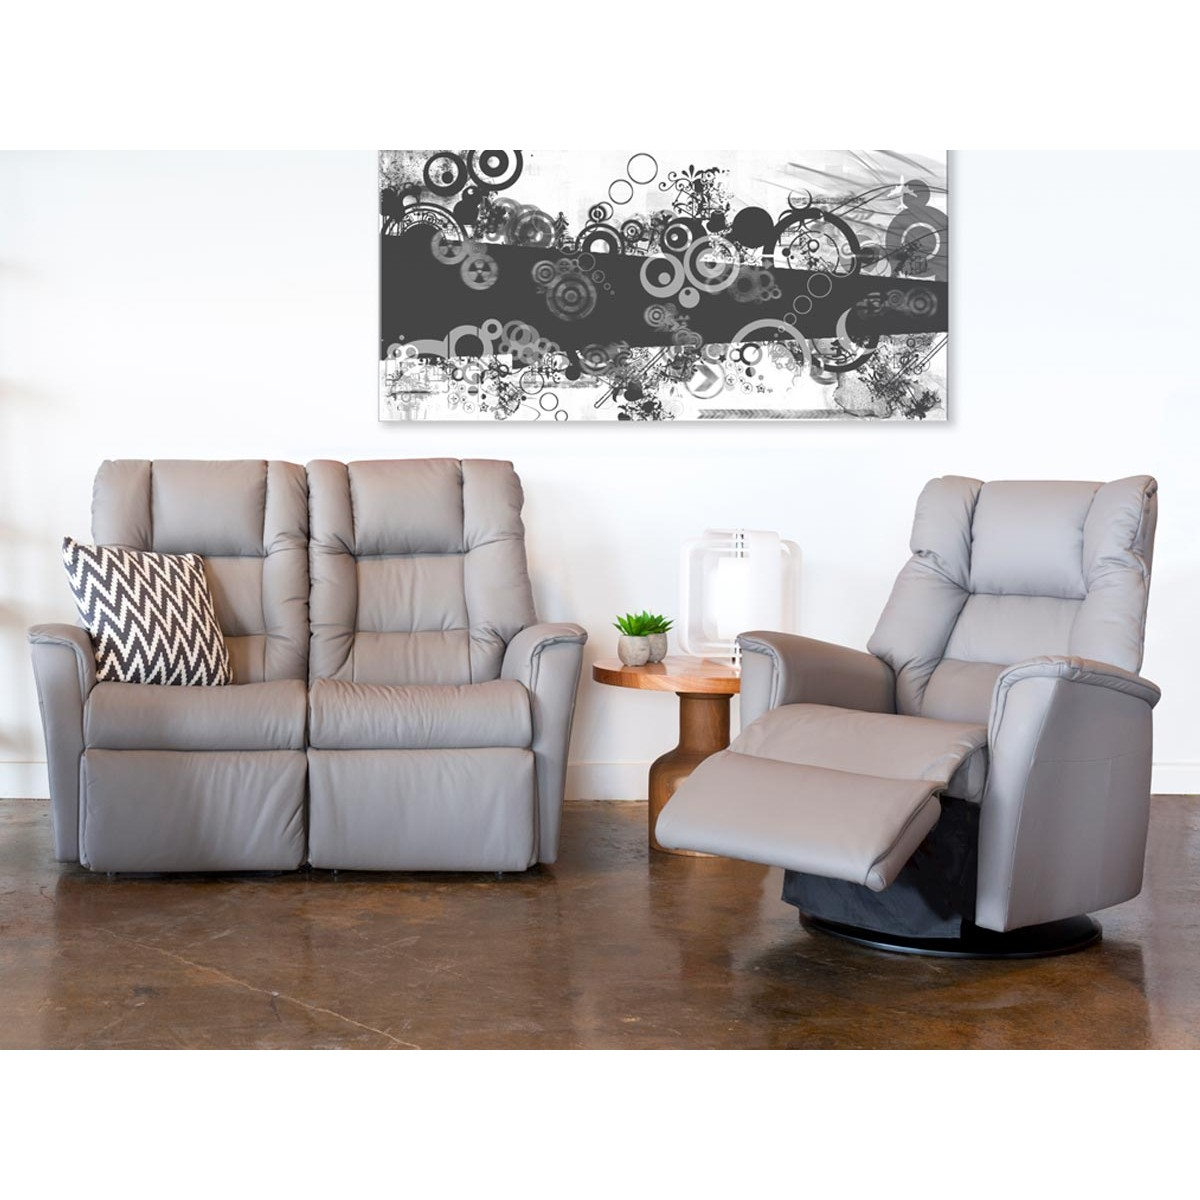 IMG Verona 2-Seat Relaxer Recliner from $2,722.50 by IMG | Danco Modern